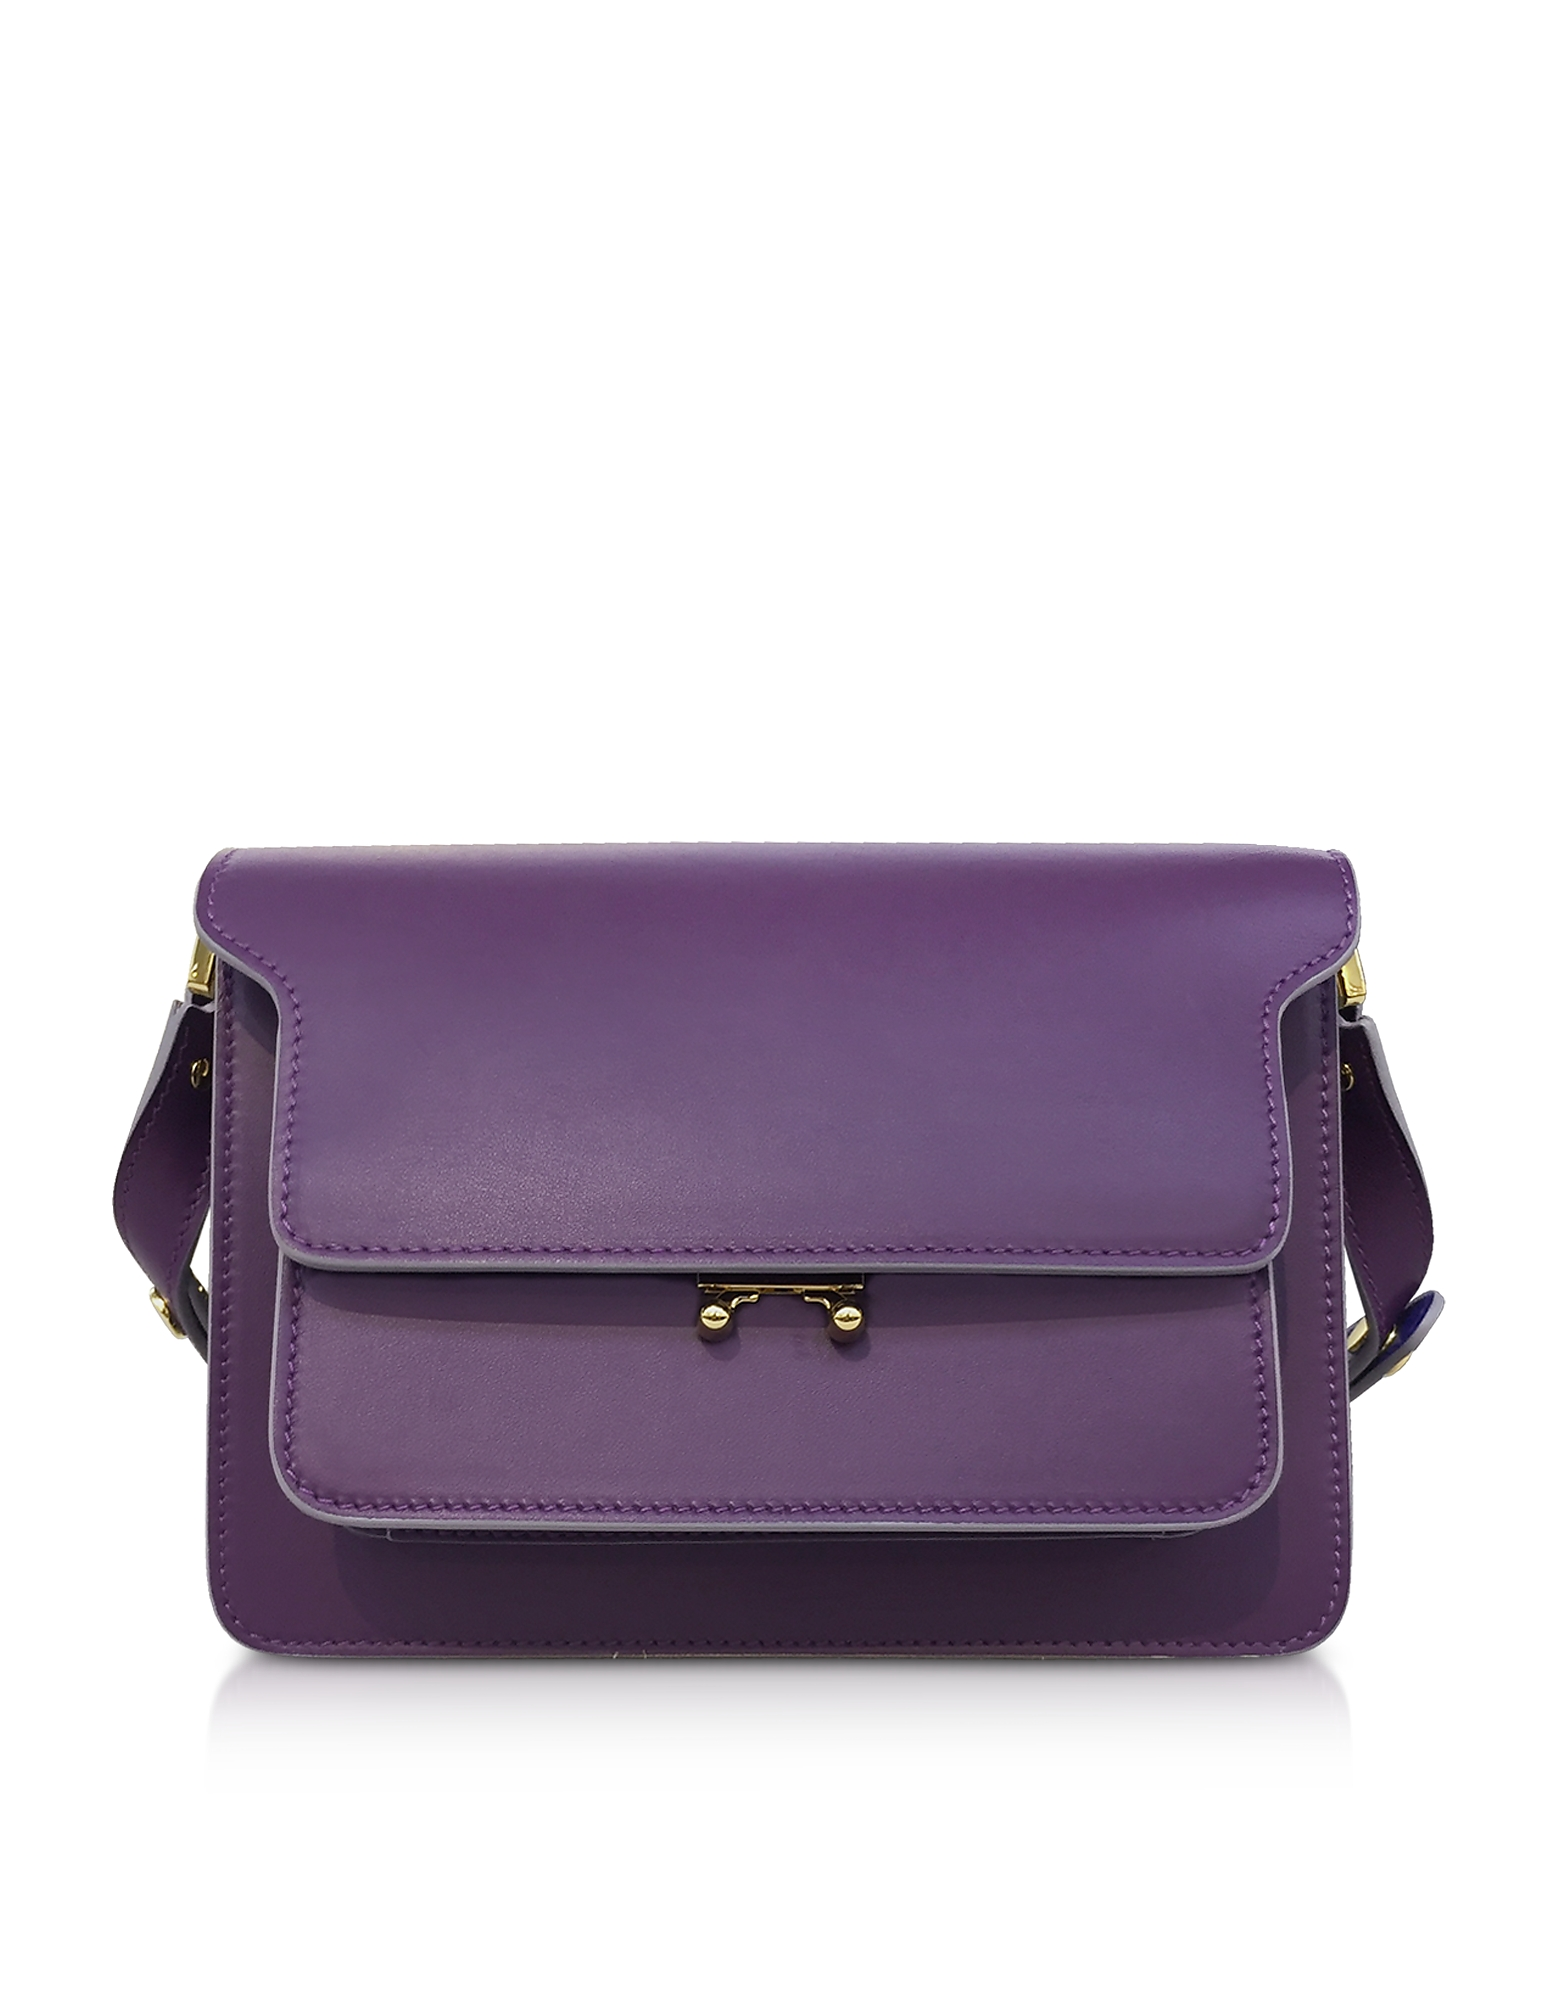 Image of Marni Designer Handbags, Calfskin Trunk Shoulder Bag